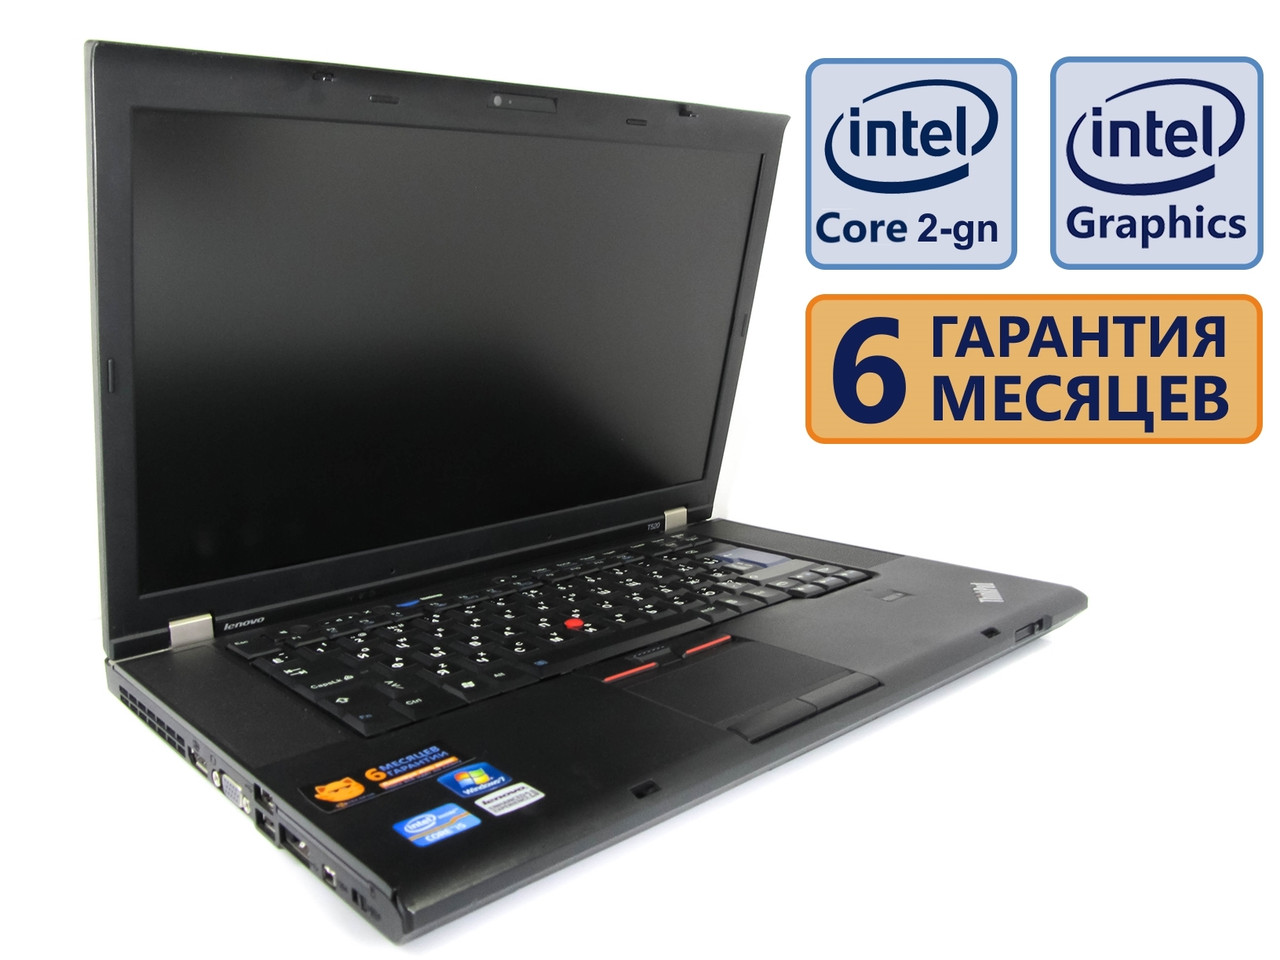 Ноутбук Lenovo Thinkpad T520 15.6 HD - FHD, Celeron... Core i7 2го поколения, RAM от 2 до 8Gb DDR3, HDD 160-500GB БУ